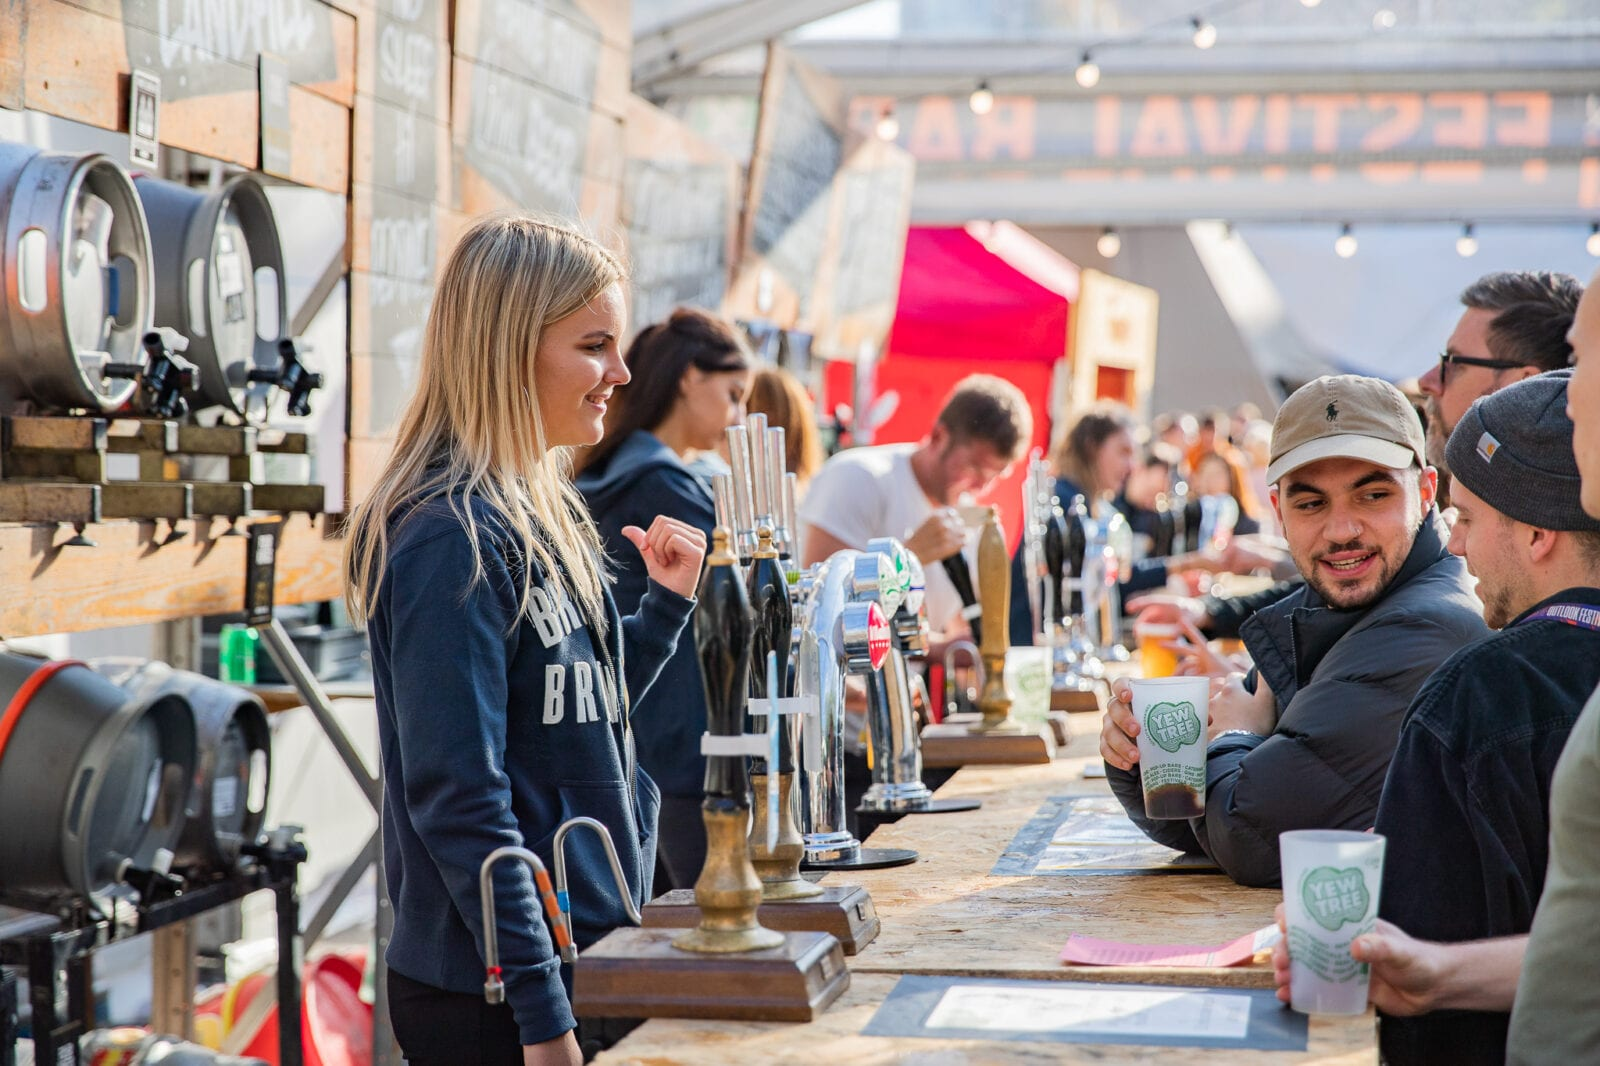 Nominations announced for the Manchester Food and Drink Festival 2021 awards, The Manc